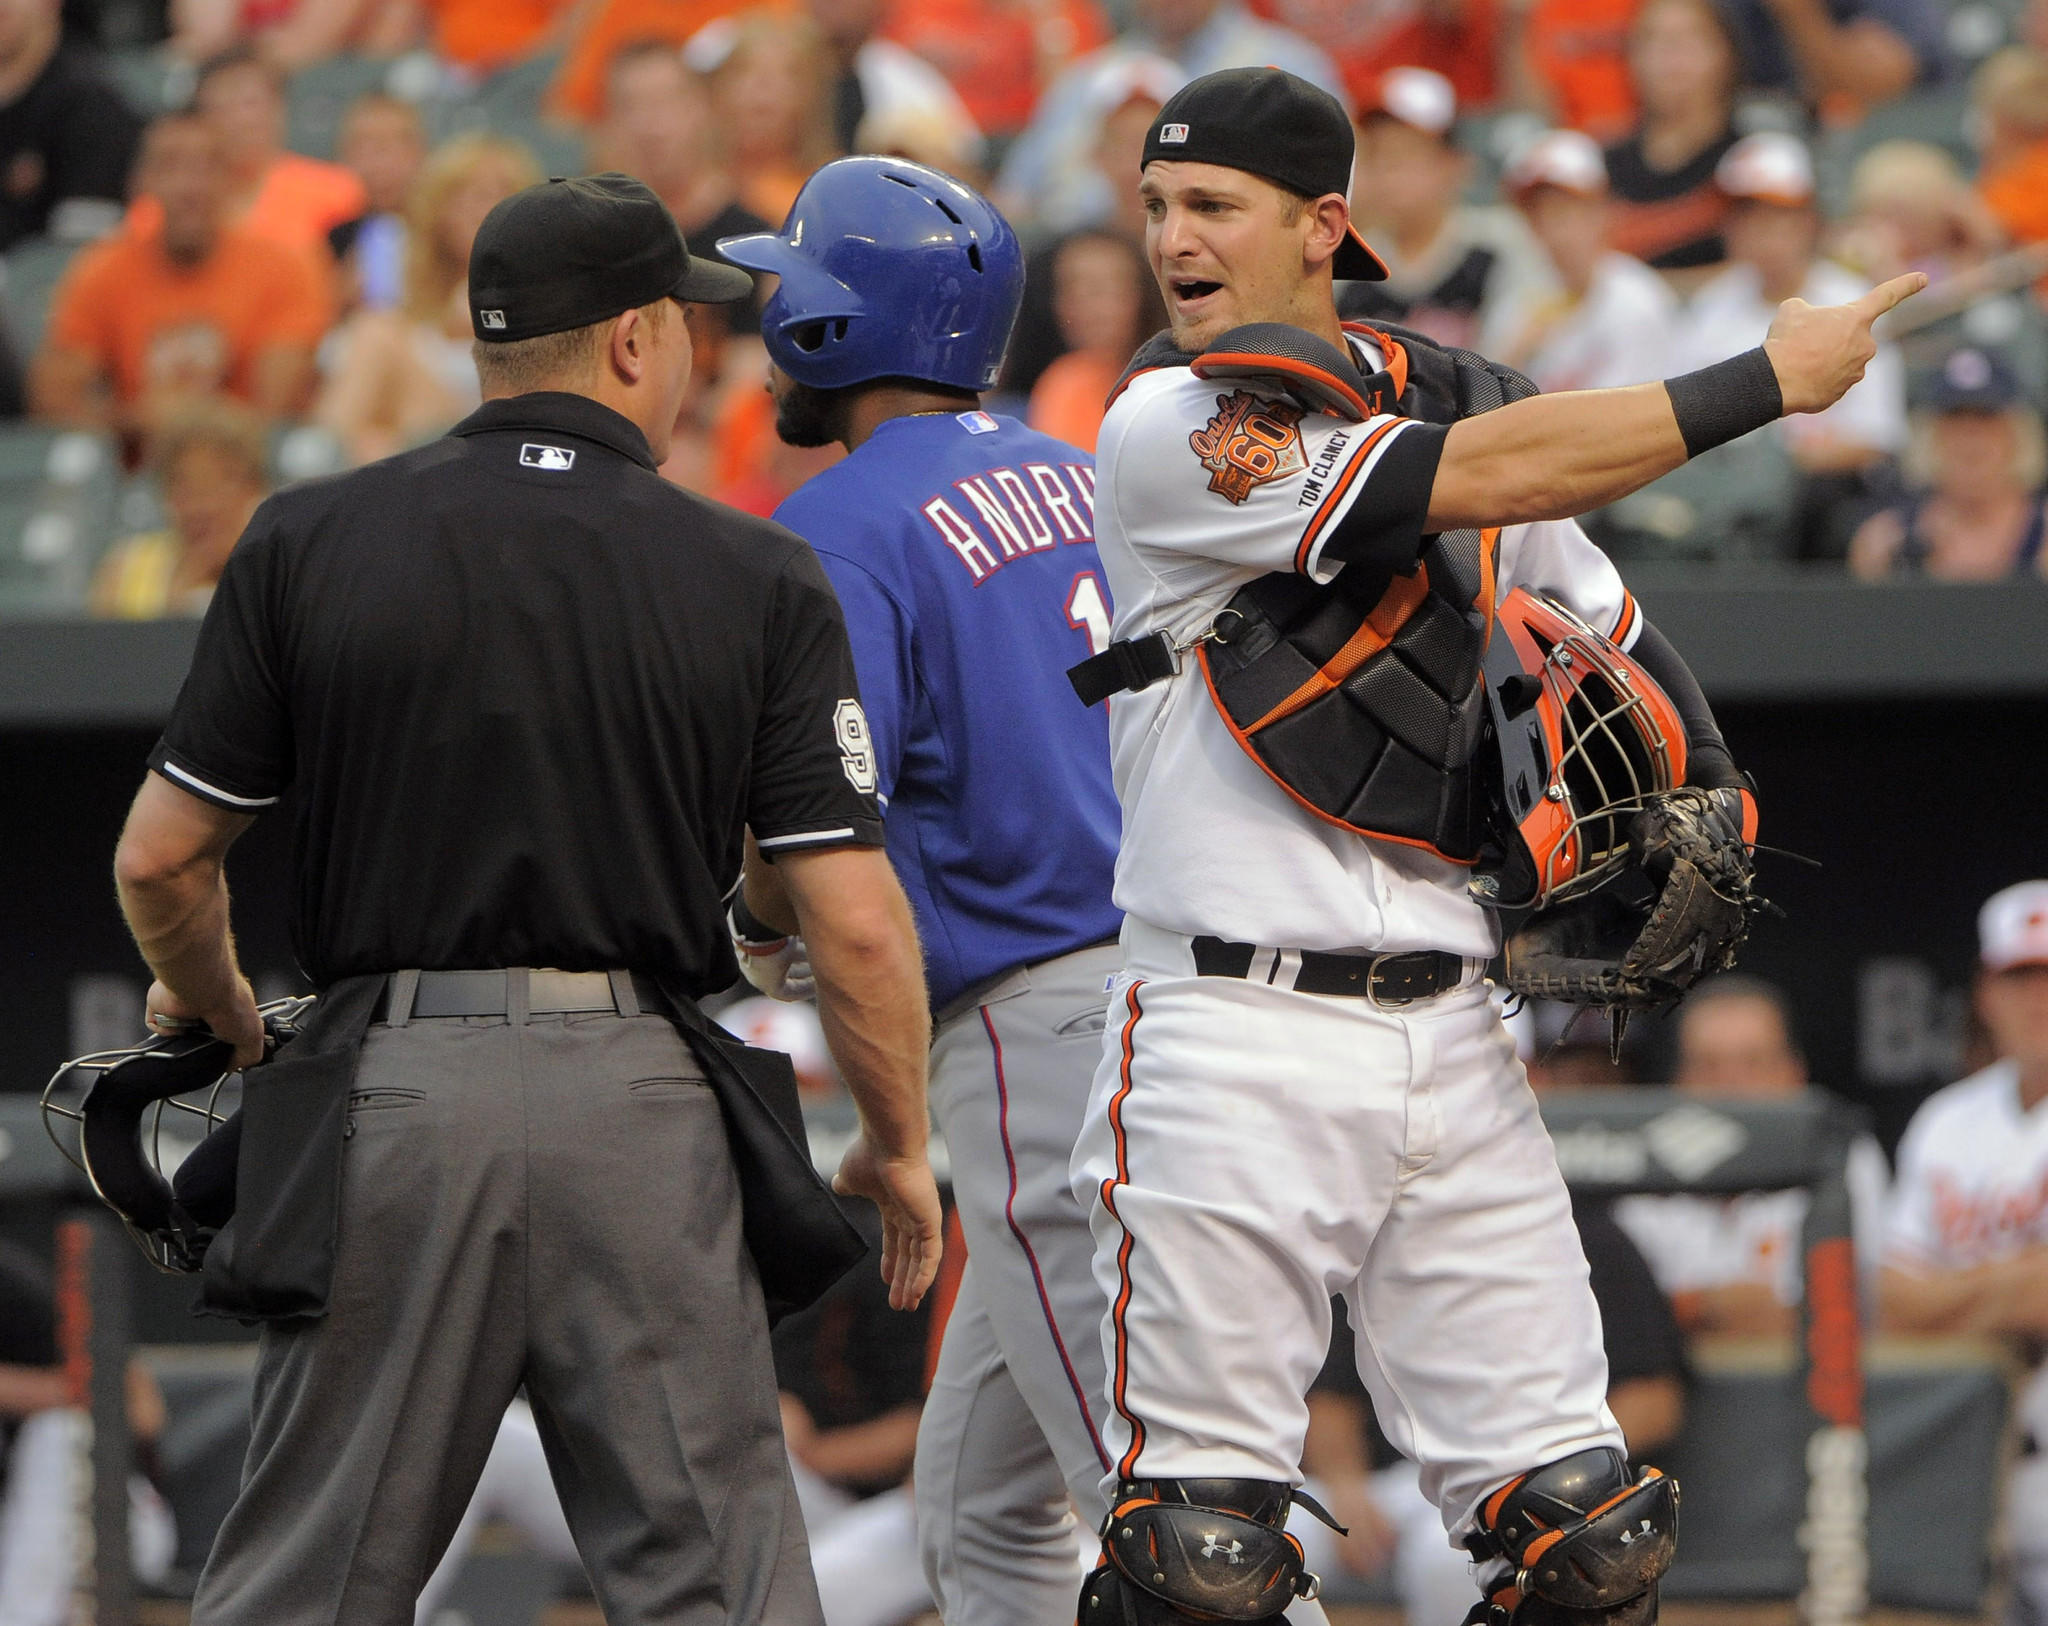 Orioles catcher Caleb Joseph, right, argues with home plate umpire Toby Basner after he was called for catcher's interference with the Texas Rangers' Elvis Andrus, background, up to bat at Camden Yards.